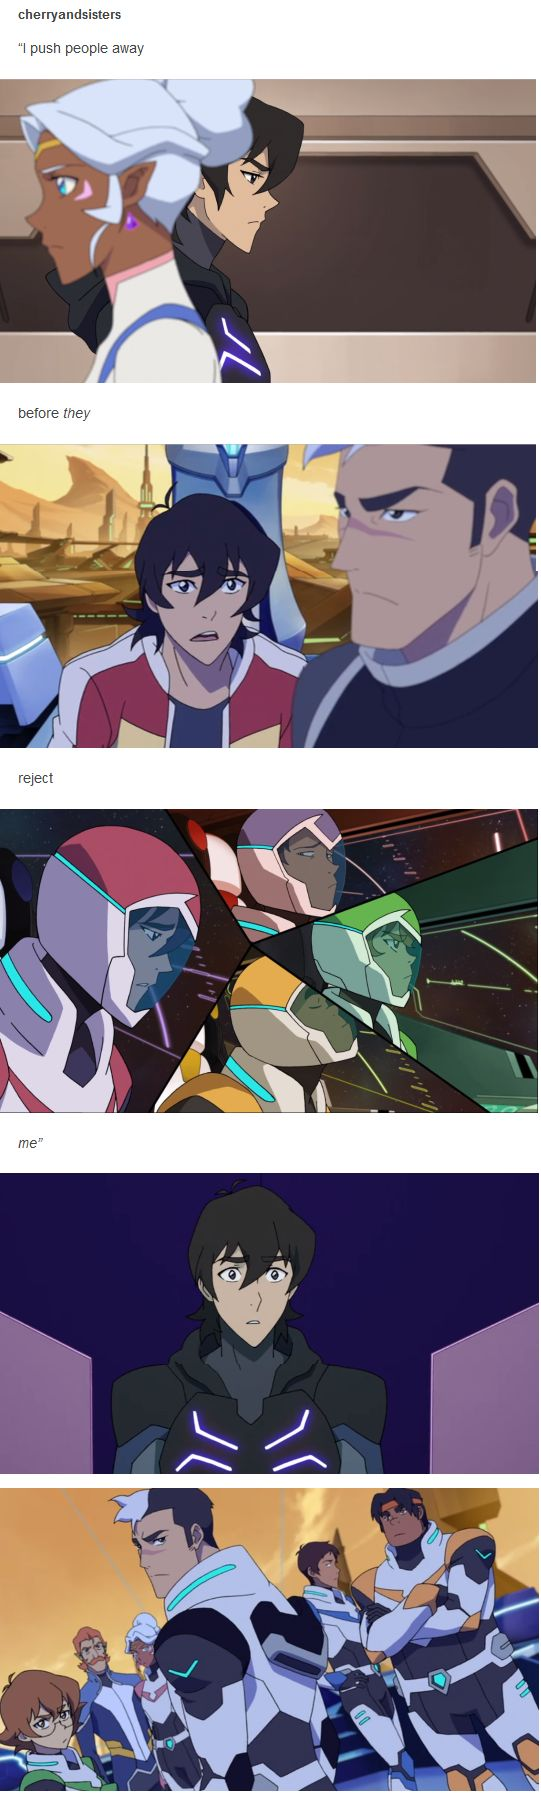 COME ON GUYS THIS EPISODE STOPPED MY HEART KEITH NEEDS TO HEAL ASAP